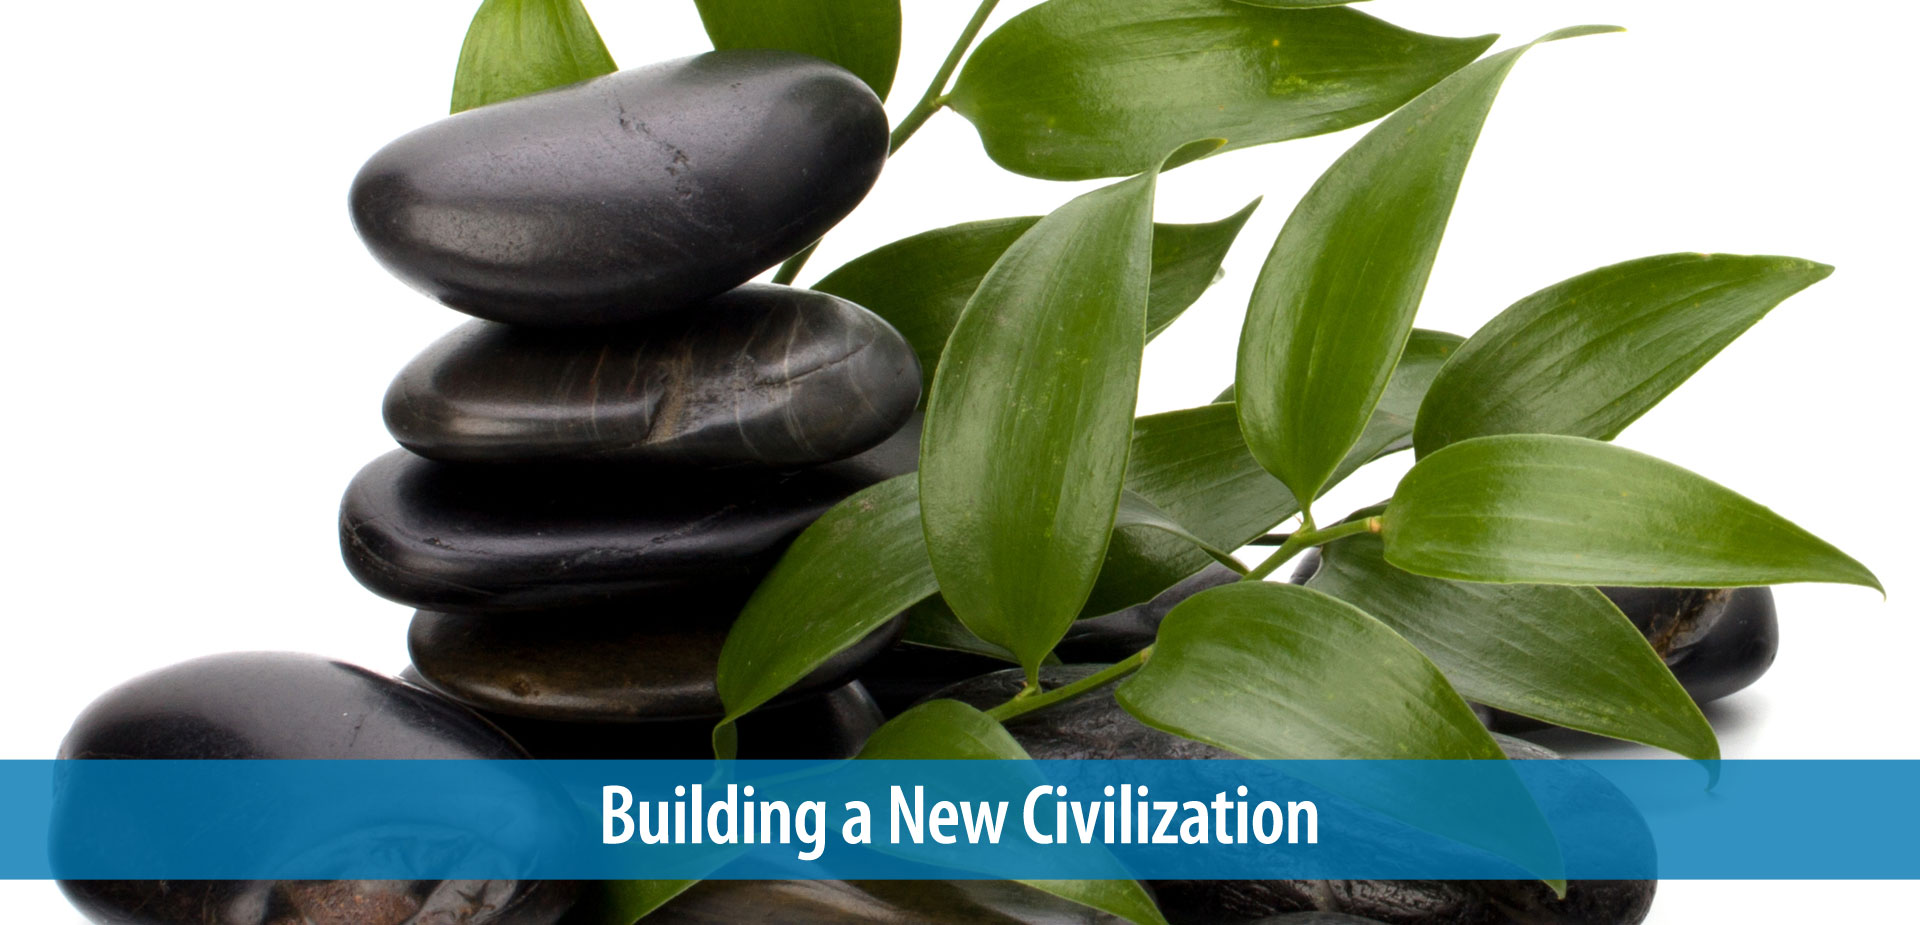 Building a New Civilization